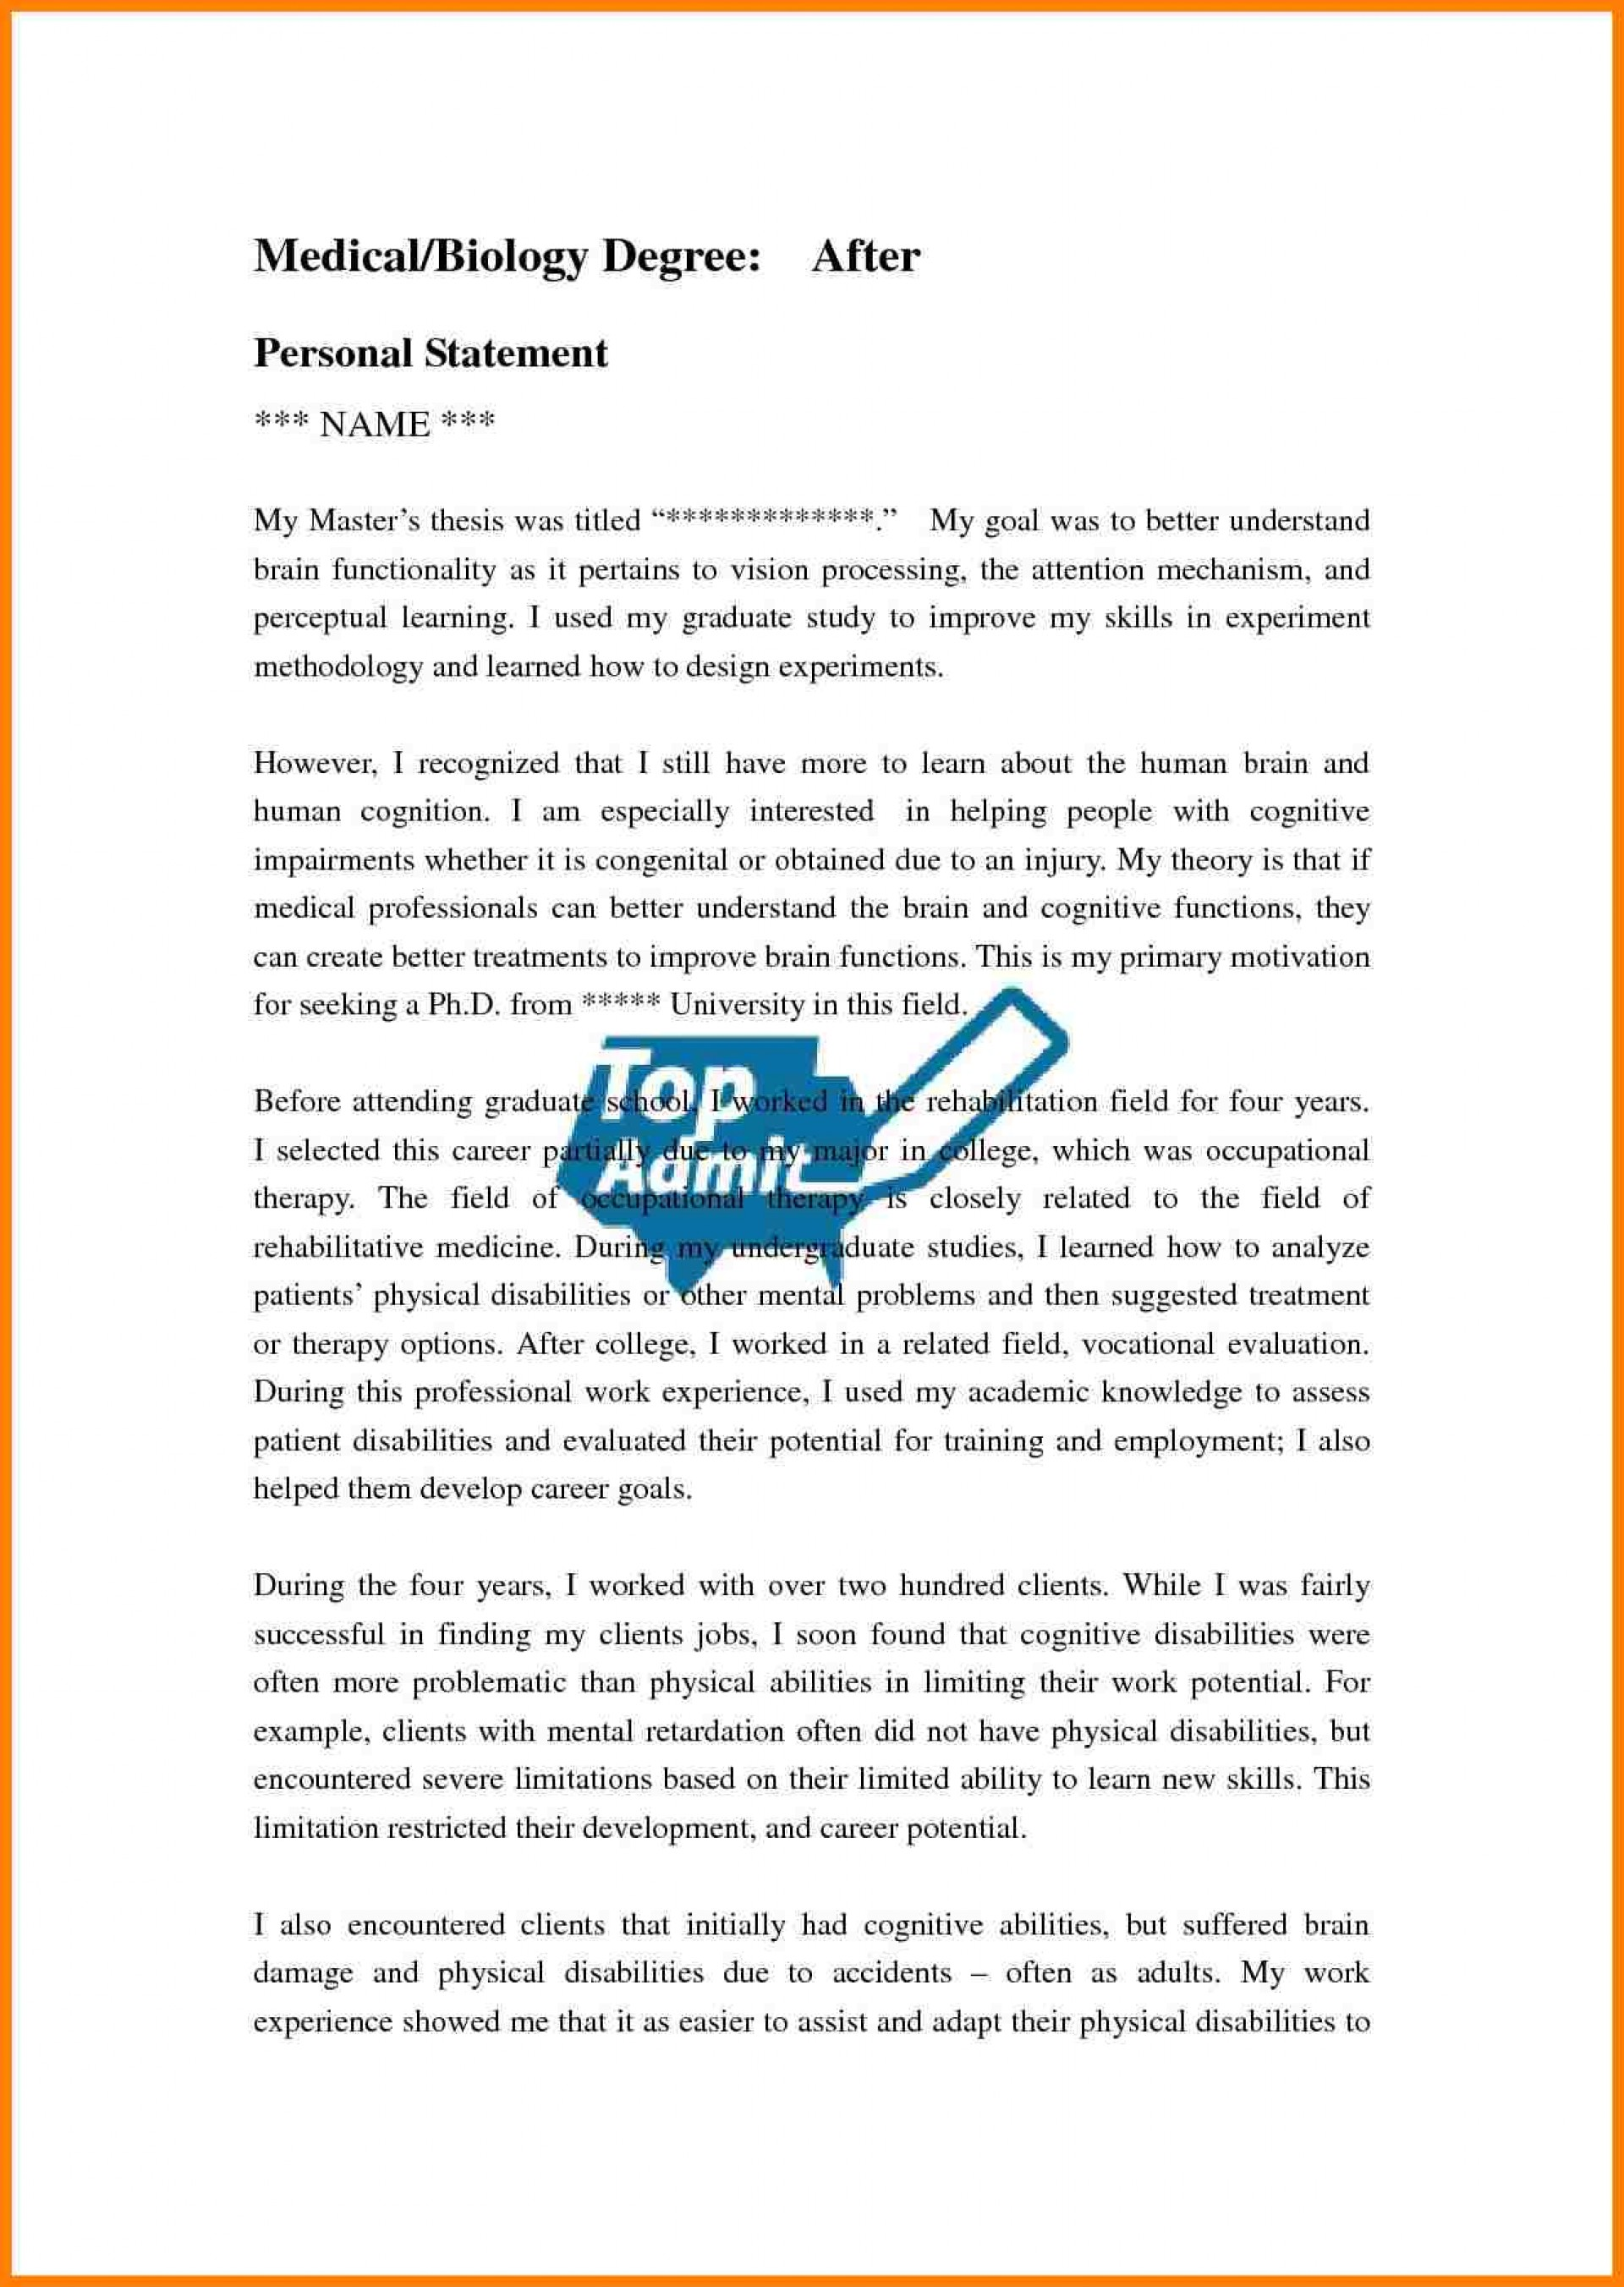 011 Essay Example Teen Essays On Football Basketball Baseball Track And Personal Goals For Graduate School L Exceptional Topics In English Wikipedia 1920